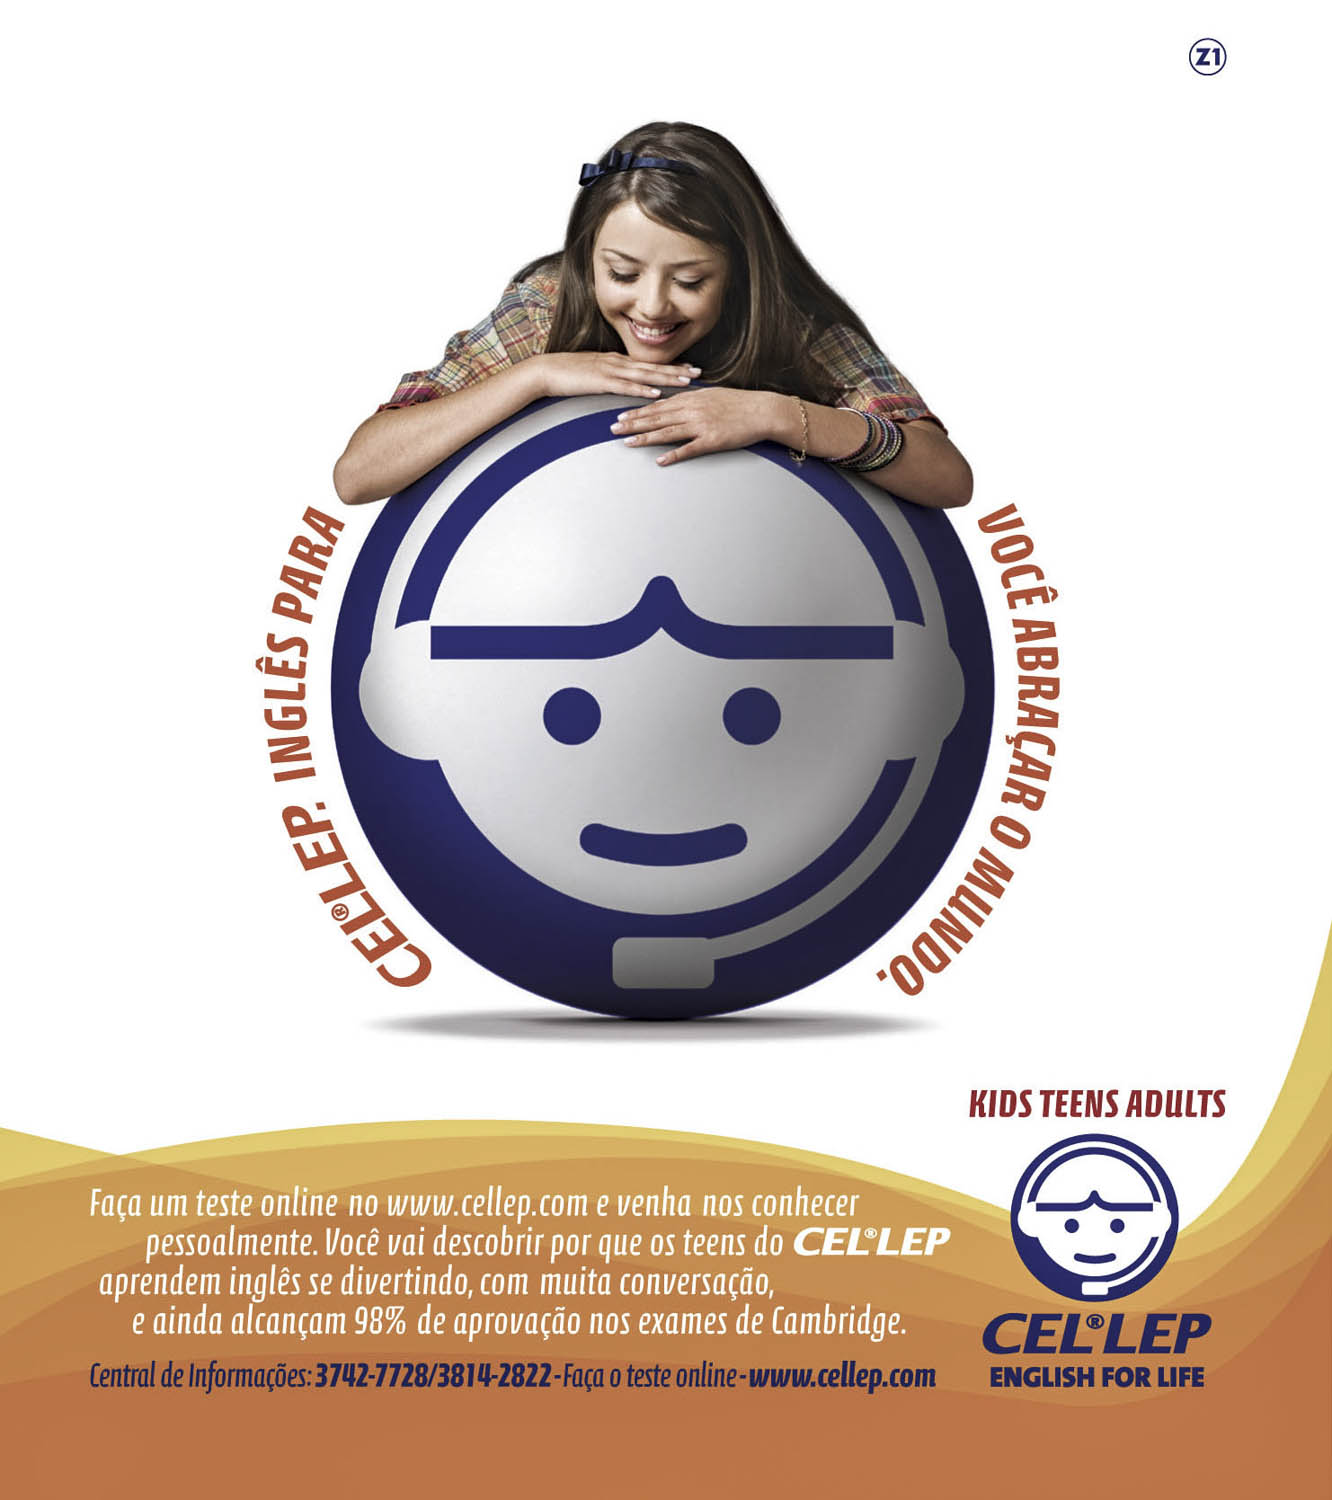 CELLEP AD CAMPAIGN, Agency Z1